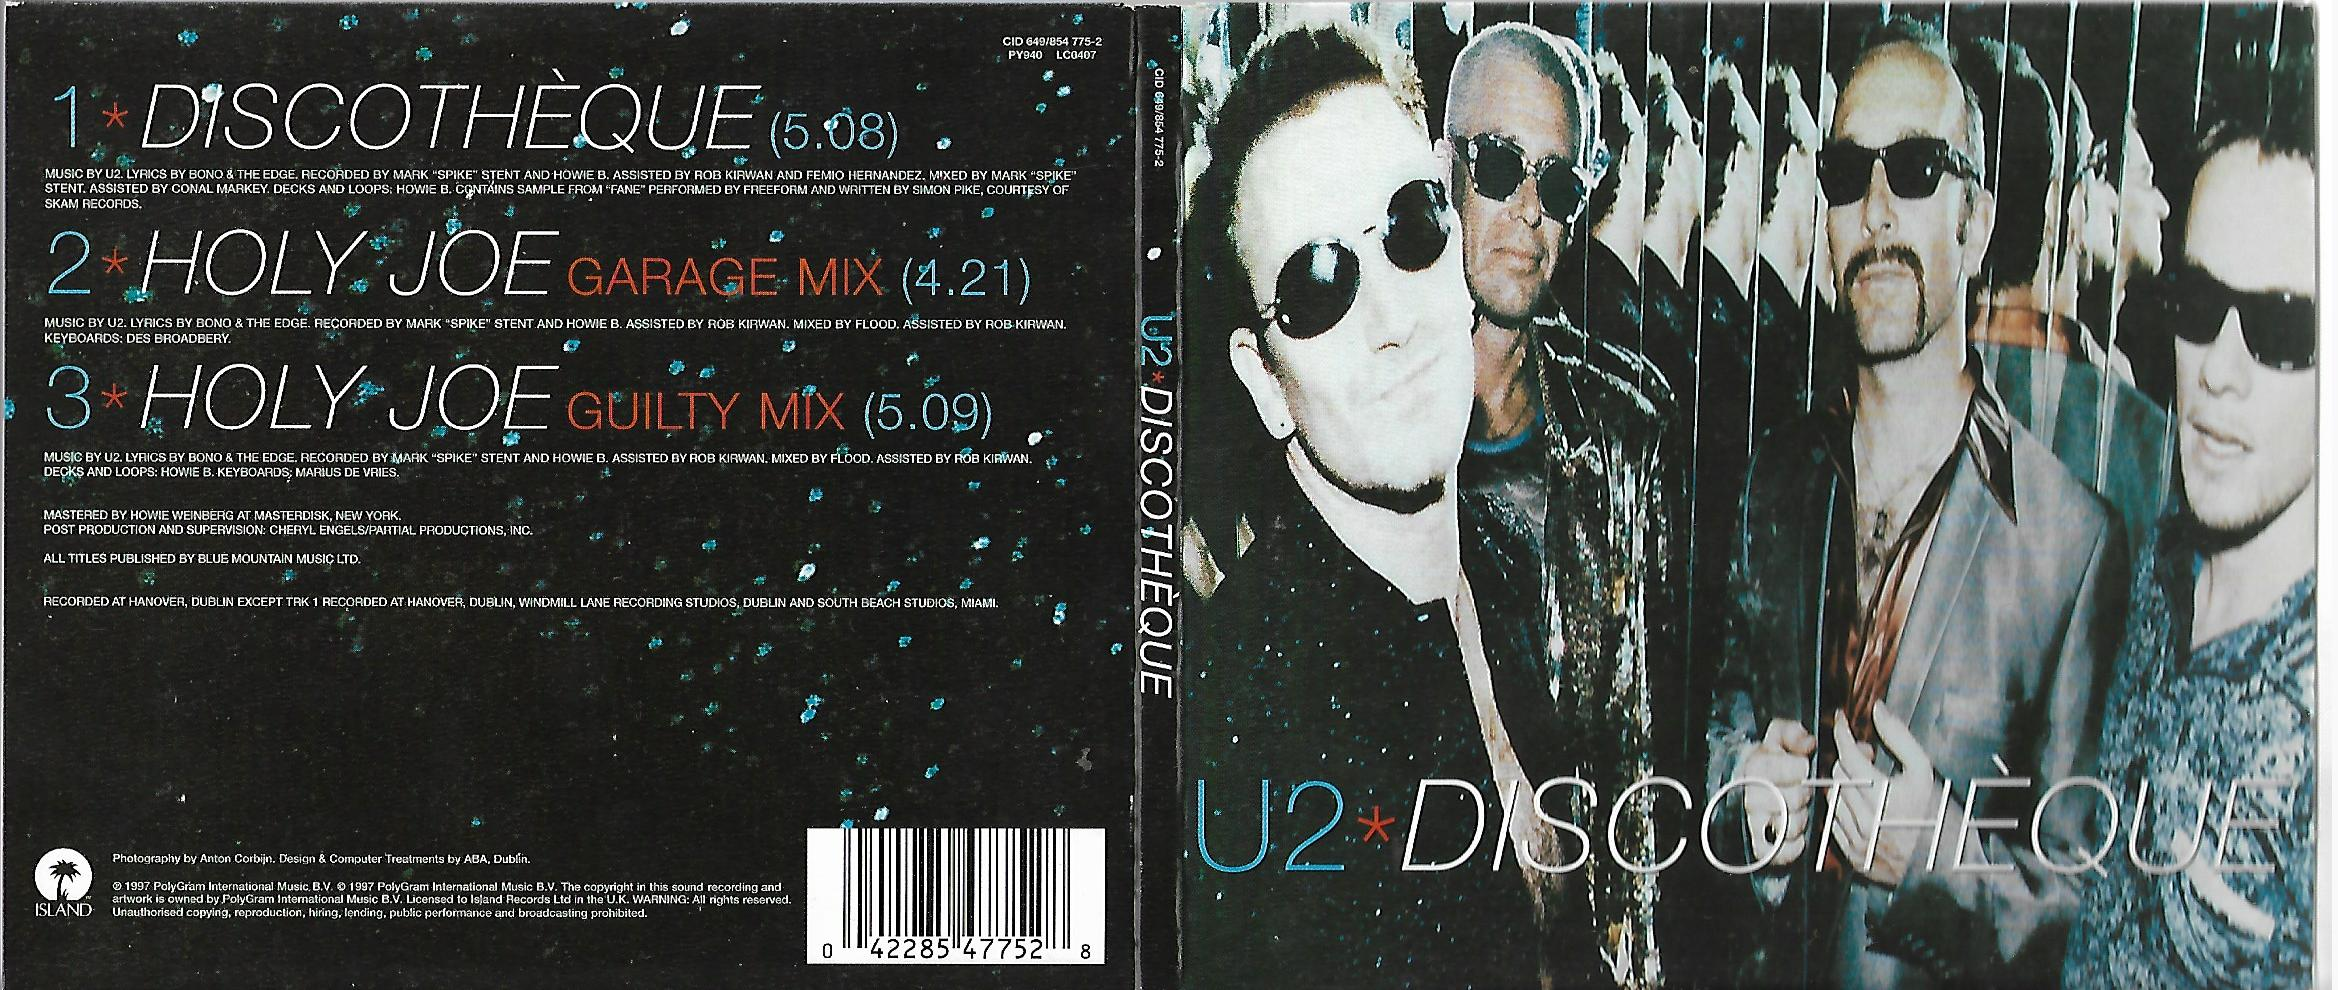 U2 - Discotheque Ltd Ed 3 Tracks Digipack